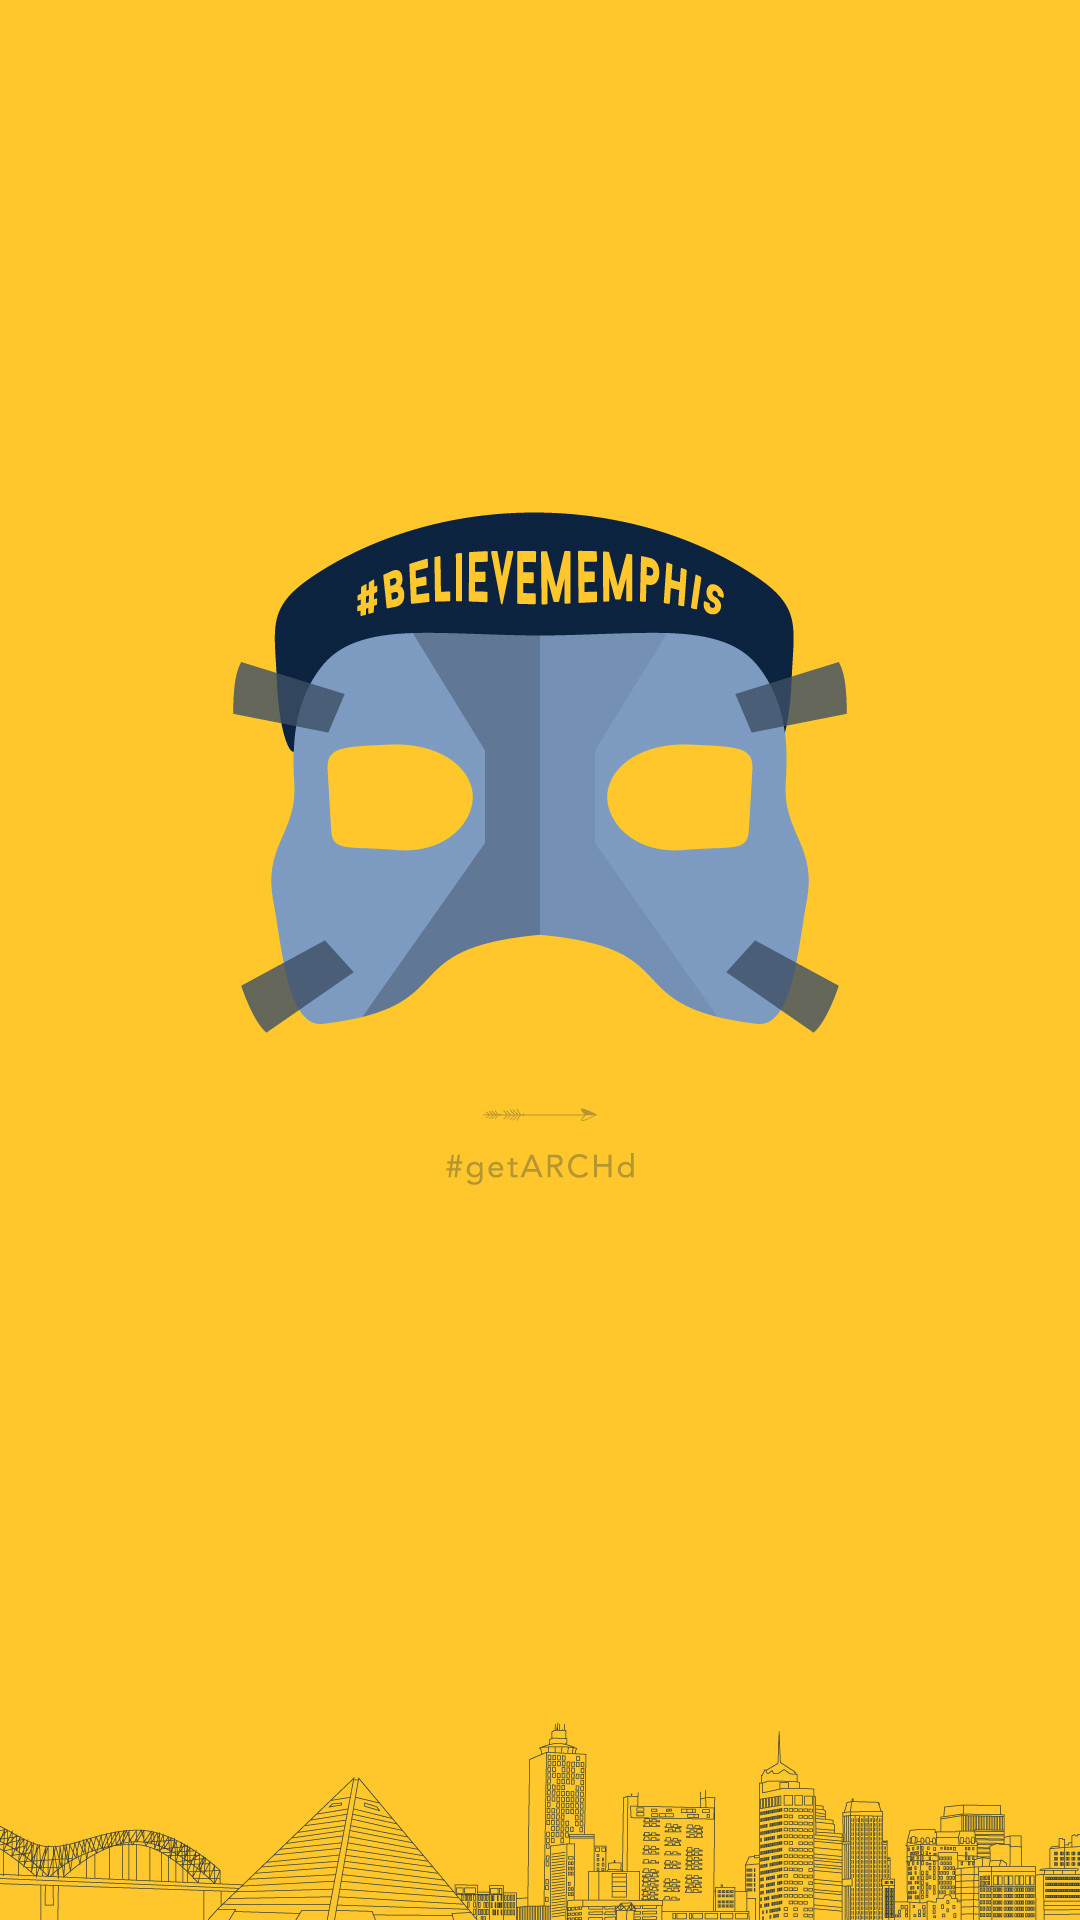 1080x1920 Memphis Grizzlies Mike Conley mask, Believe Memphis, iphone wallpaper  background free graphics download